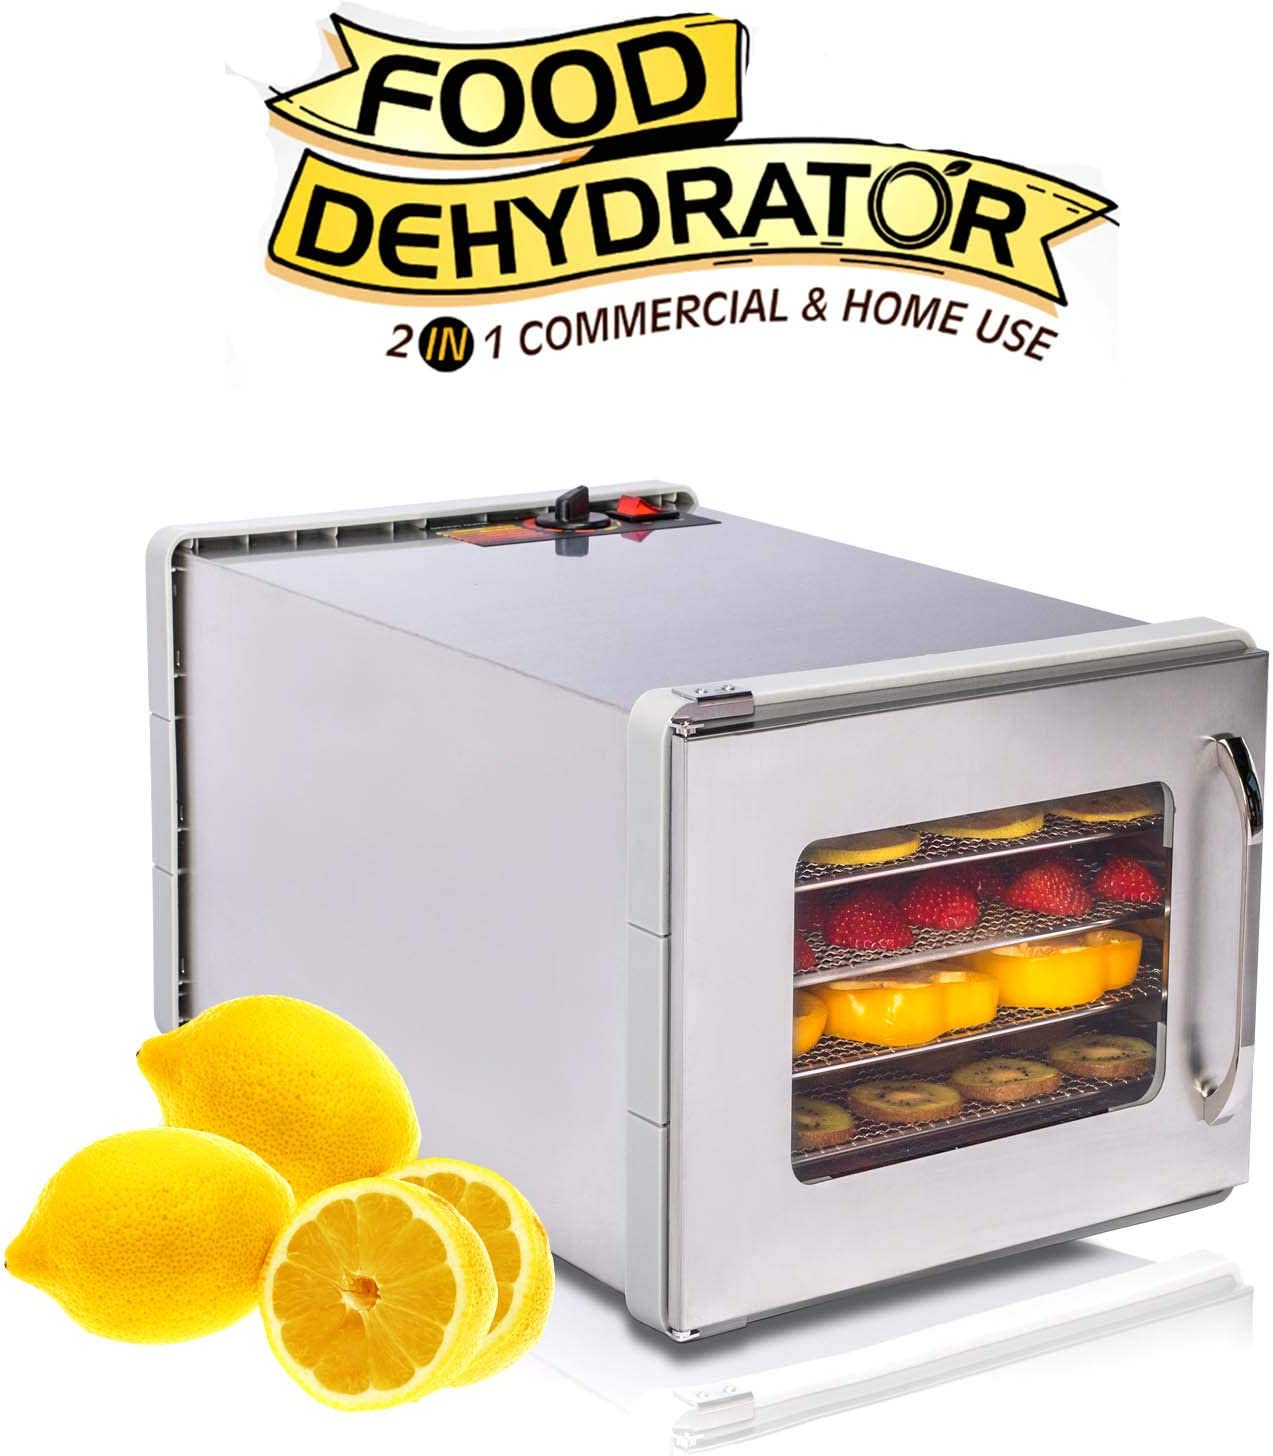 AYETEC-Commercial-Stainless-Steel-Dehydrator